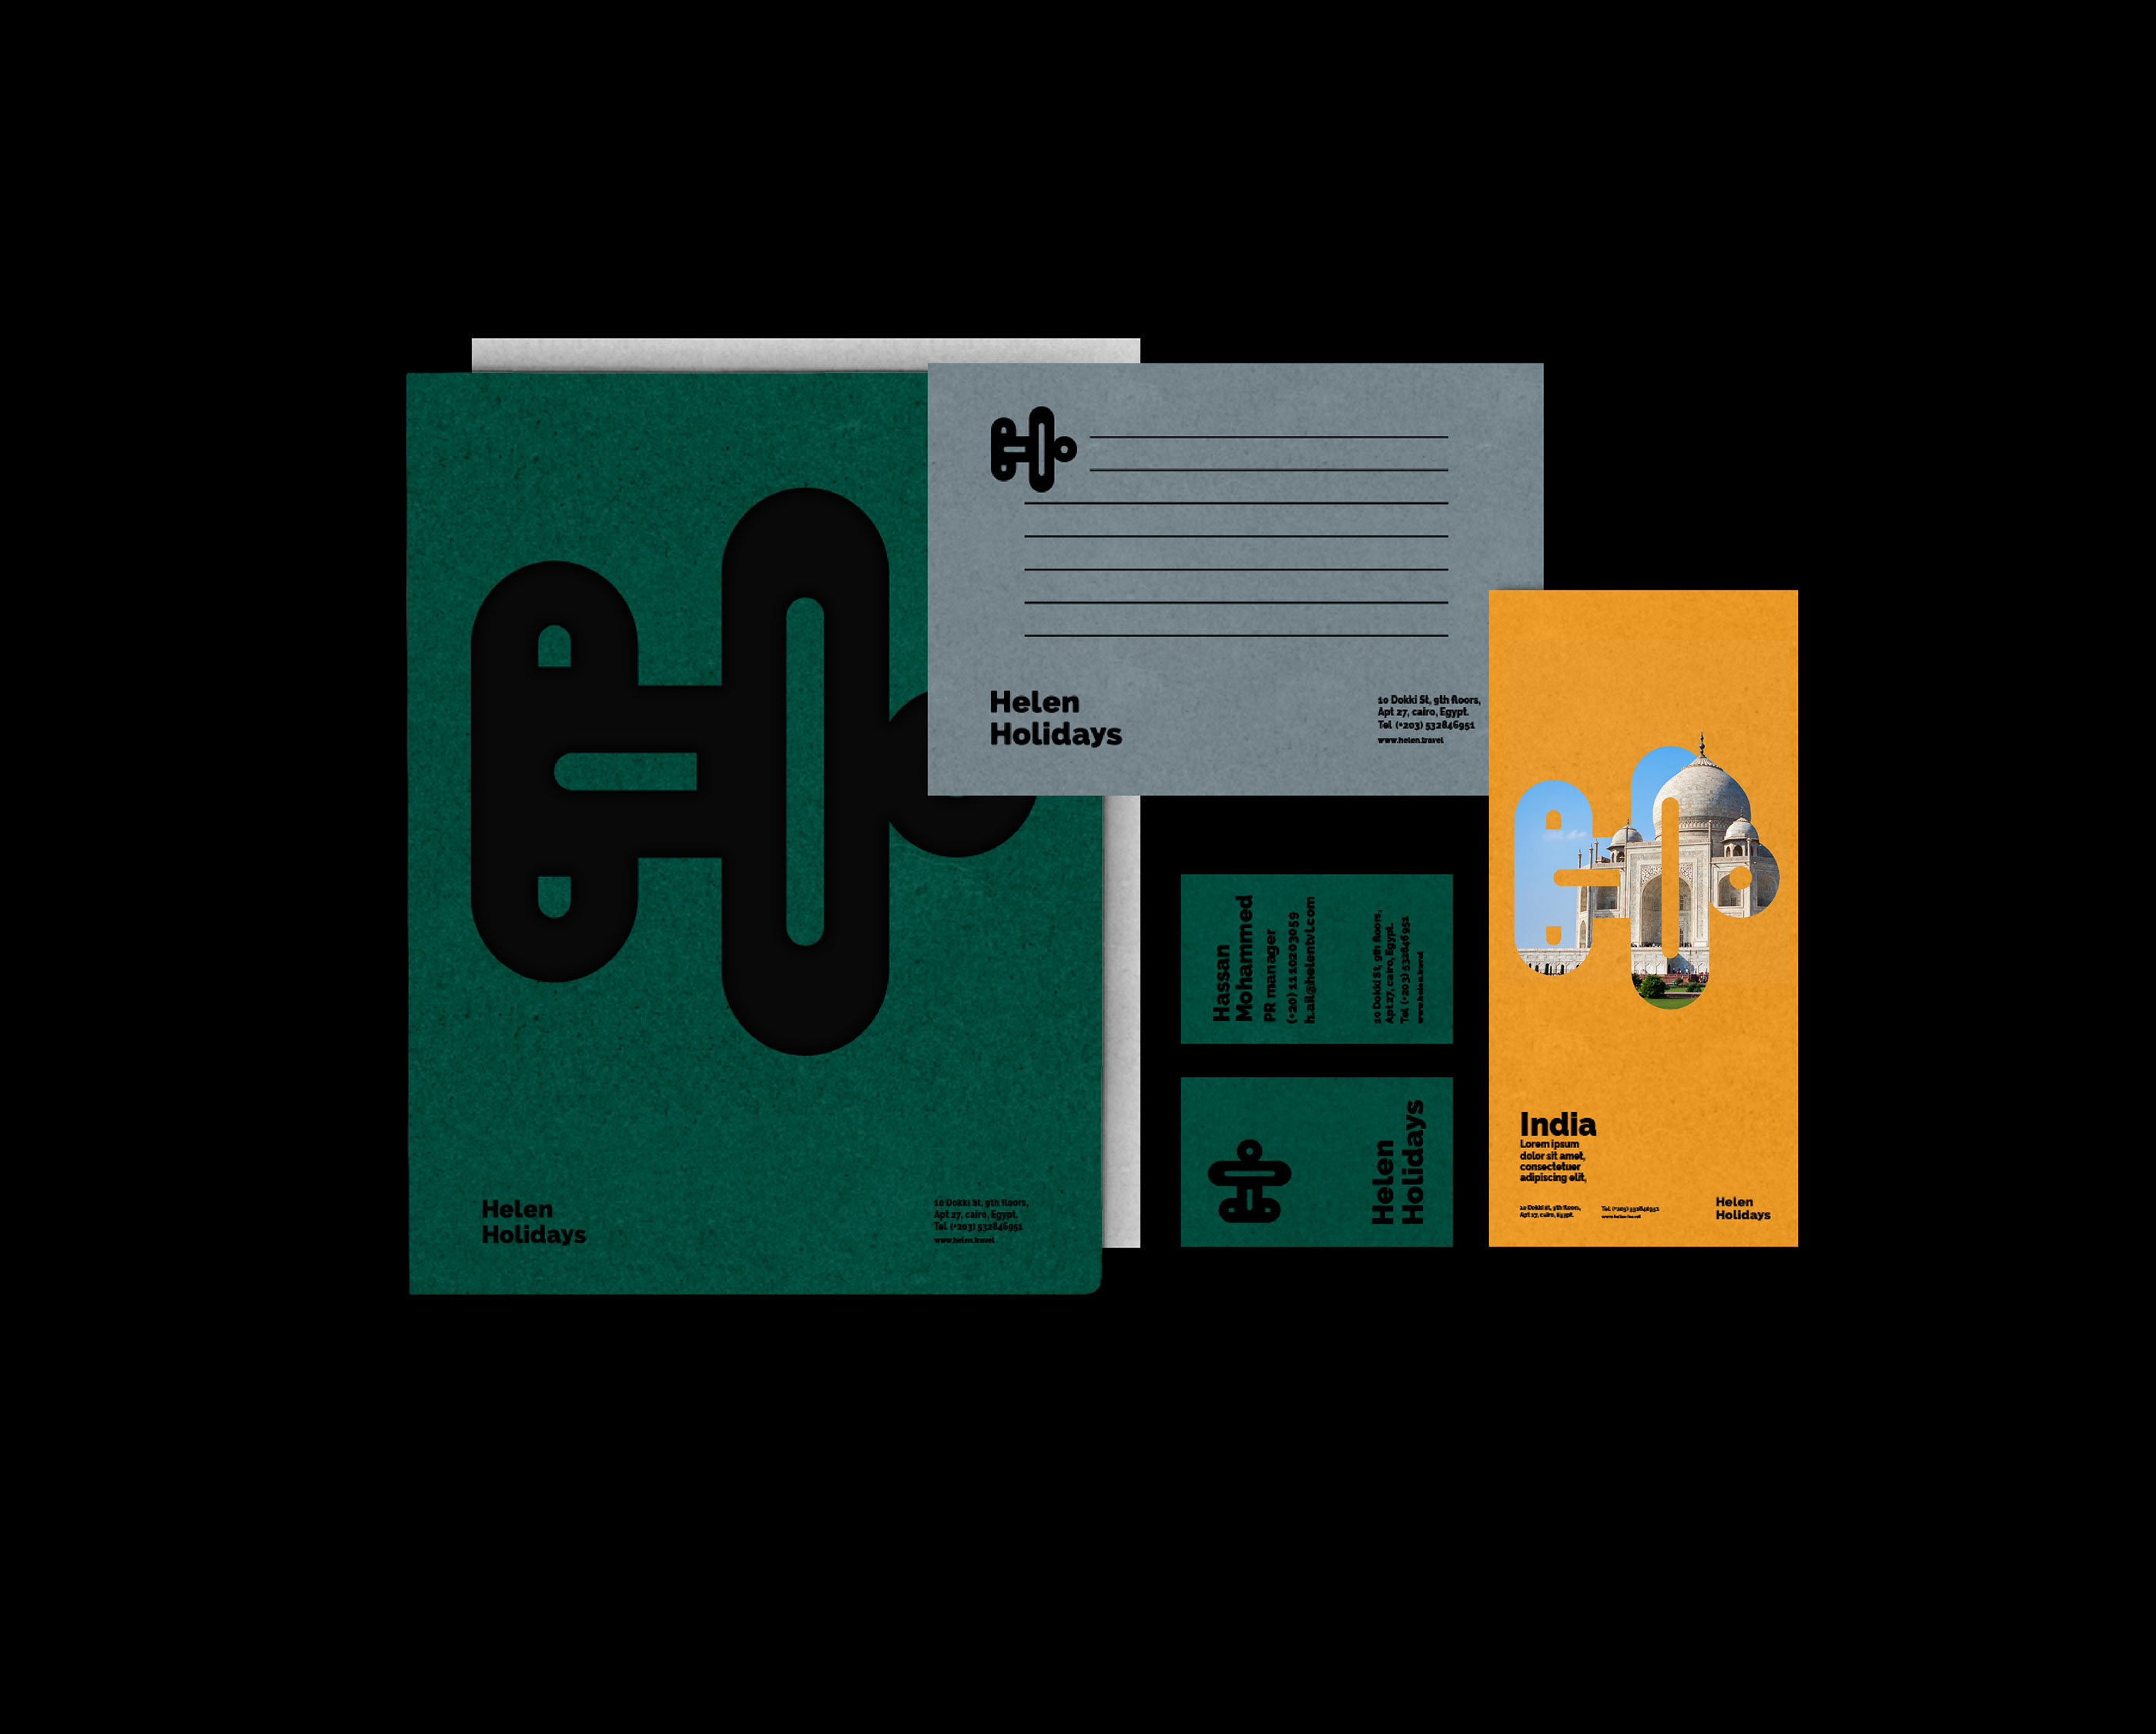 Re-Branding Proposal Concept by Mai Mousa for Helen Holidays